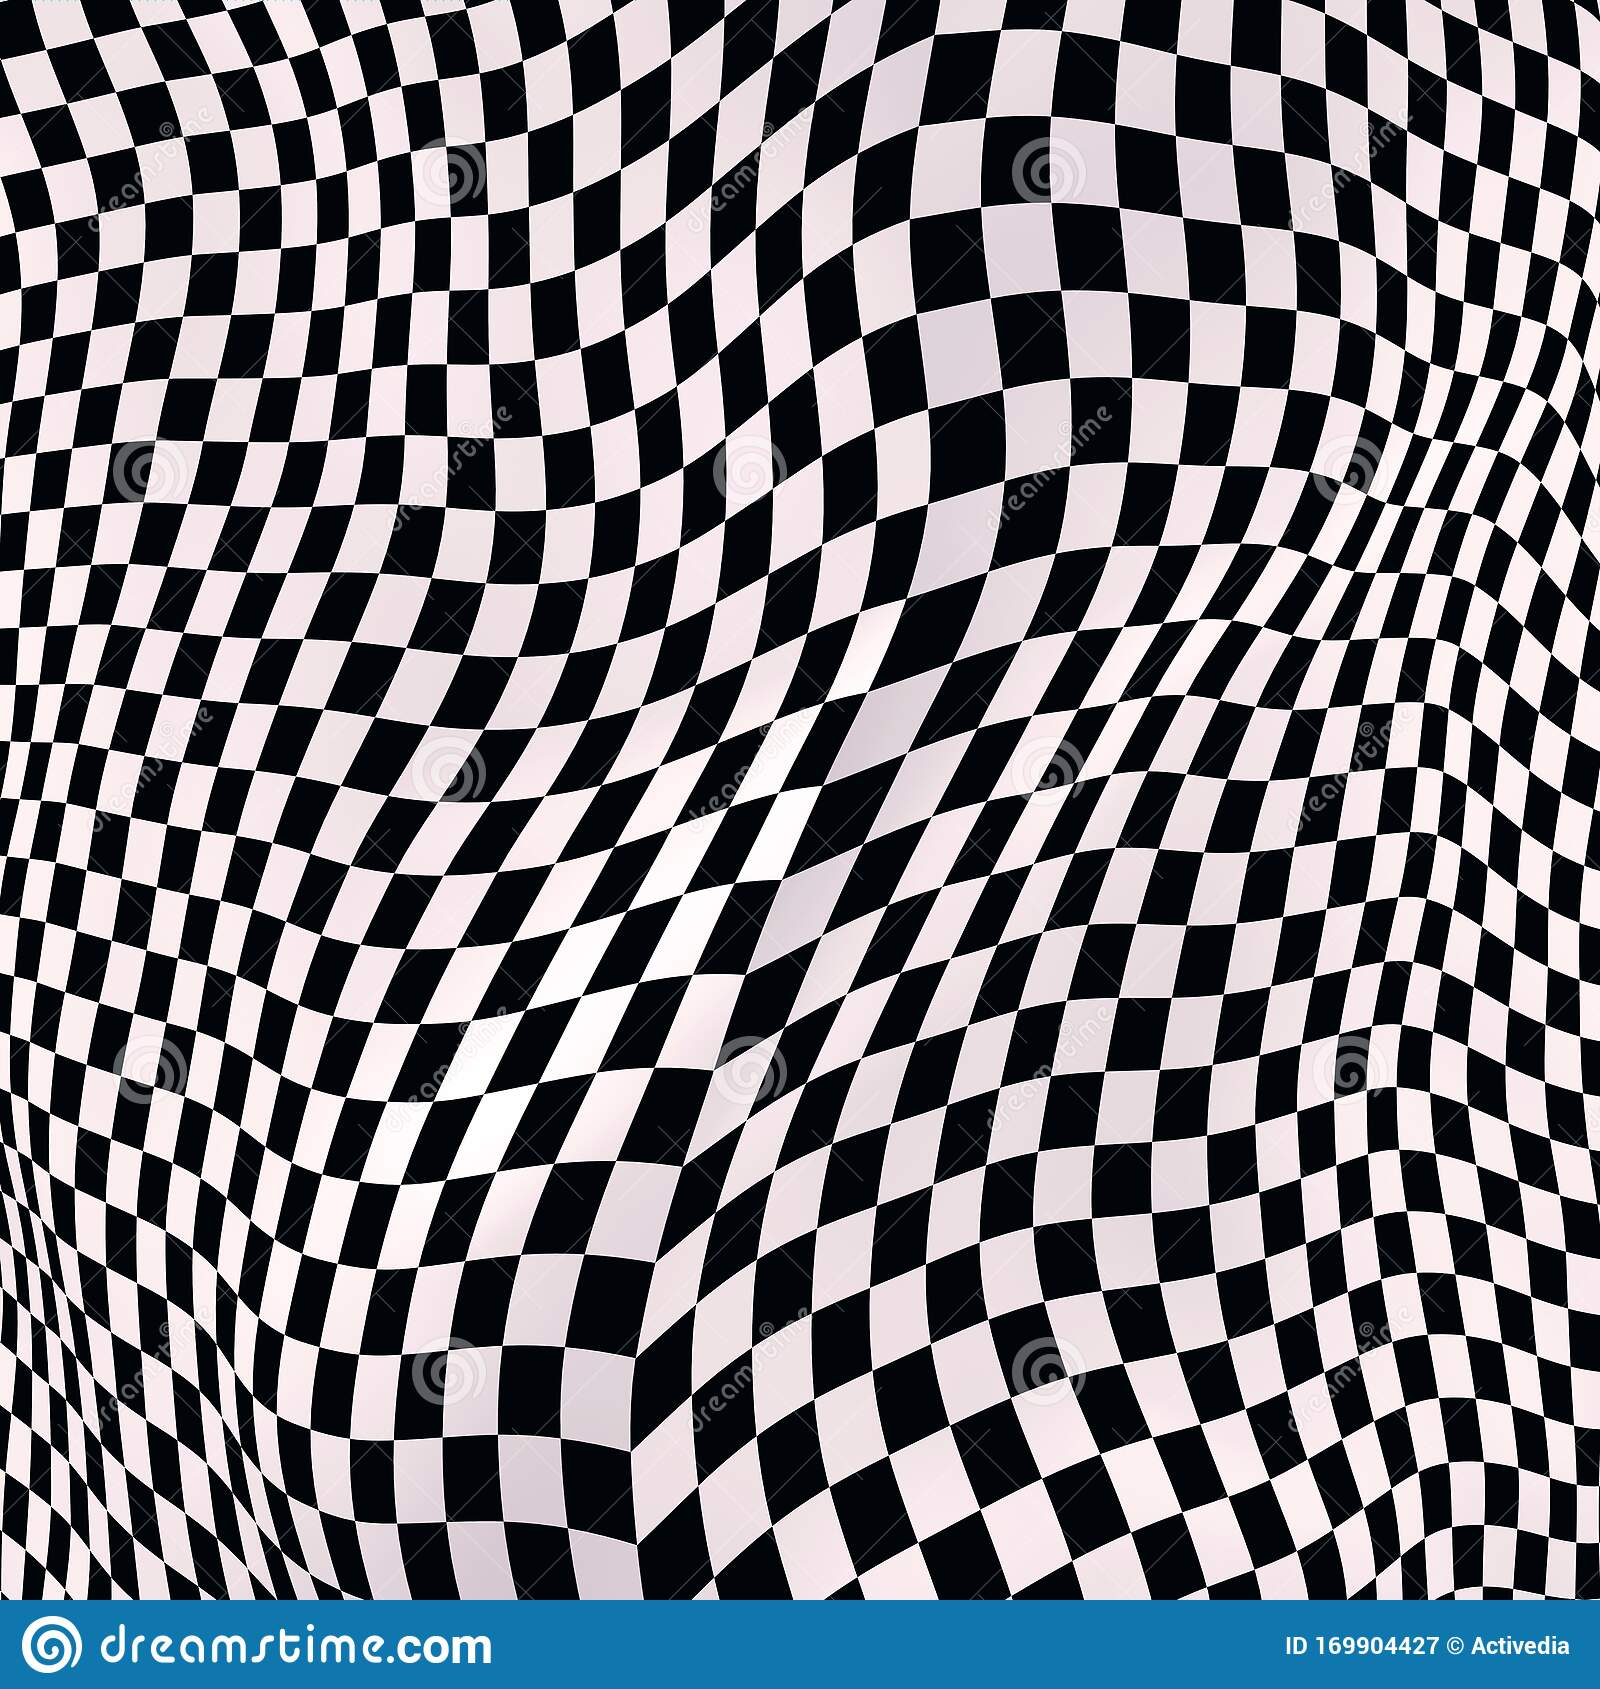 Psychedelic Trippy Optical Illusions 03 Stock Illustration